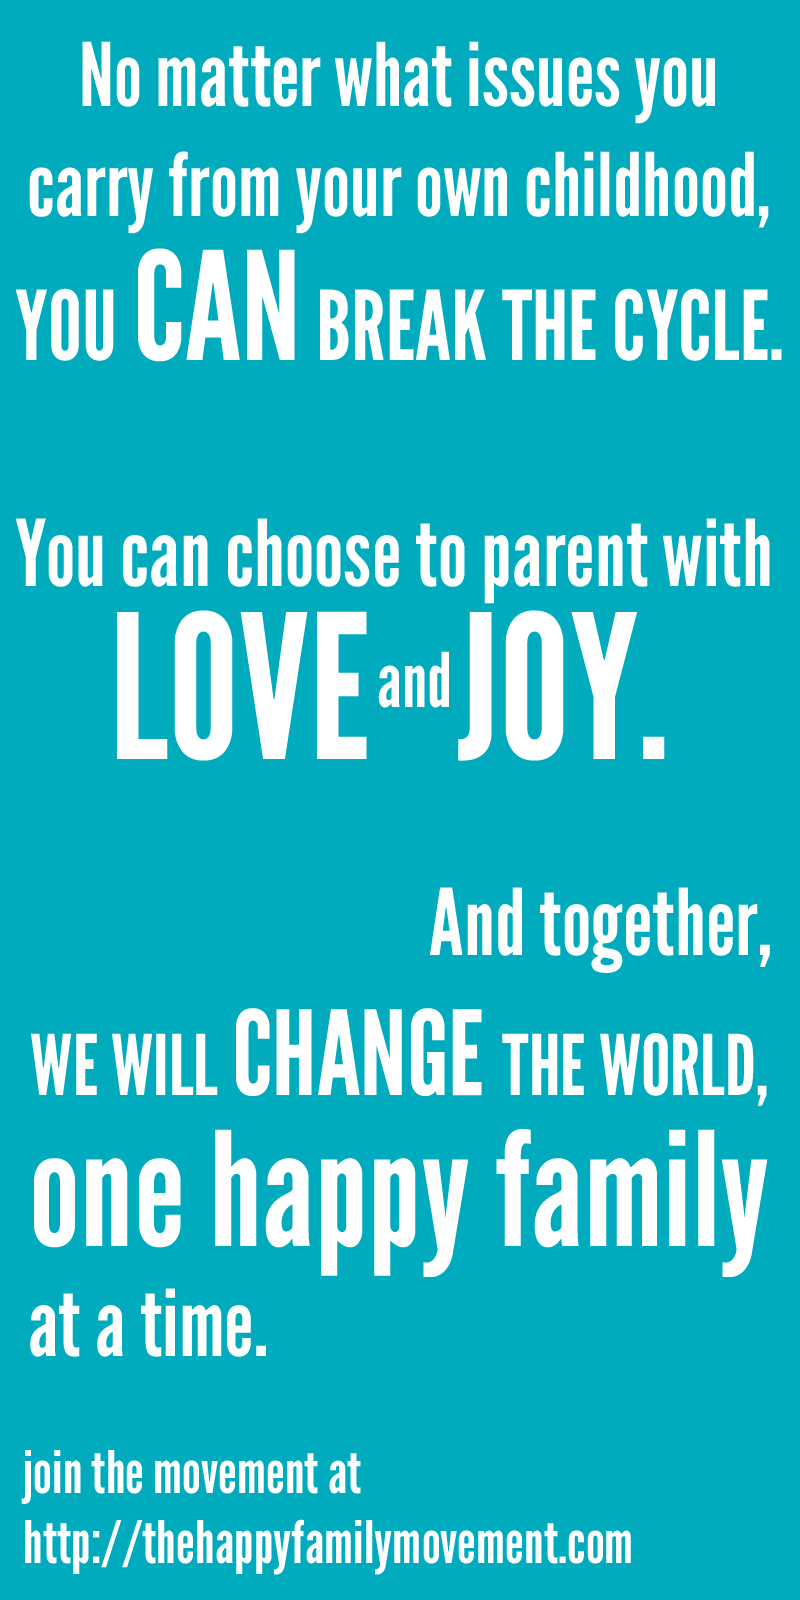 change the world one happy family at a time